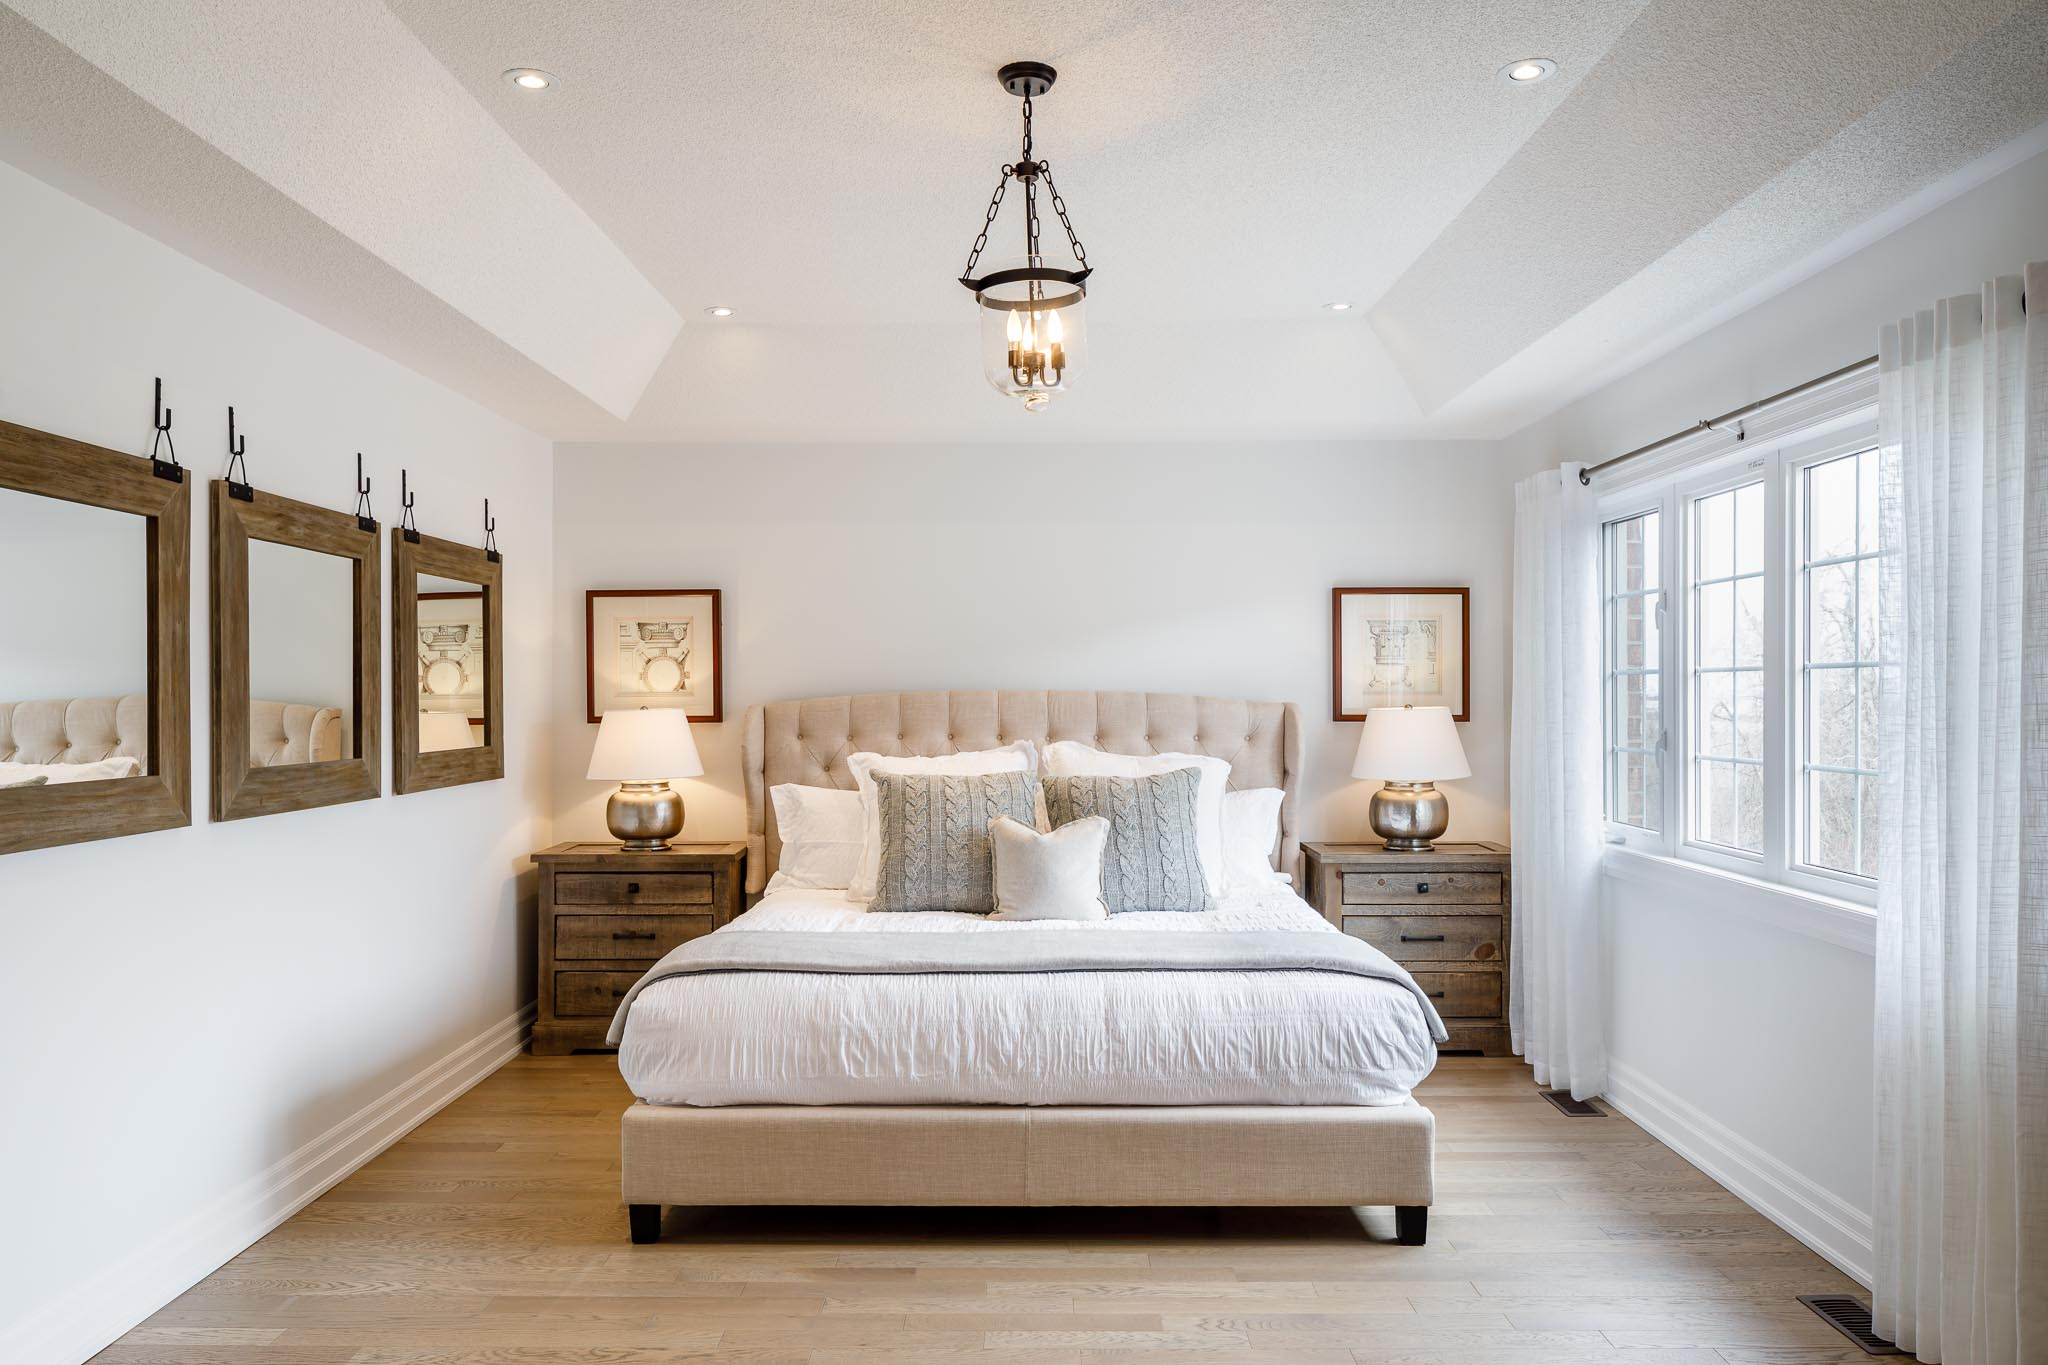 Great Gulf Westfield master bedroom with upholstered bed, white bedding, white walls, and light wood accents